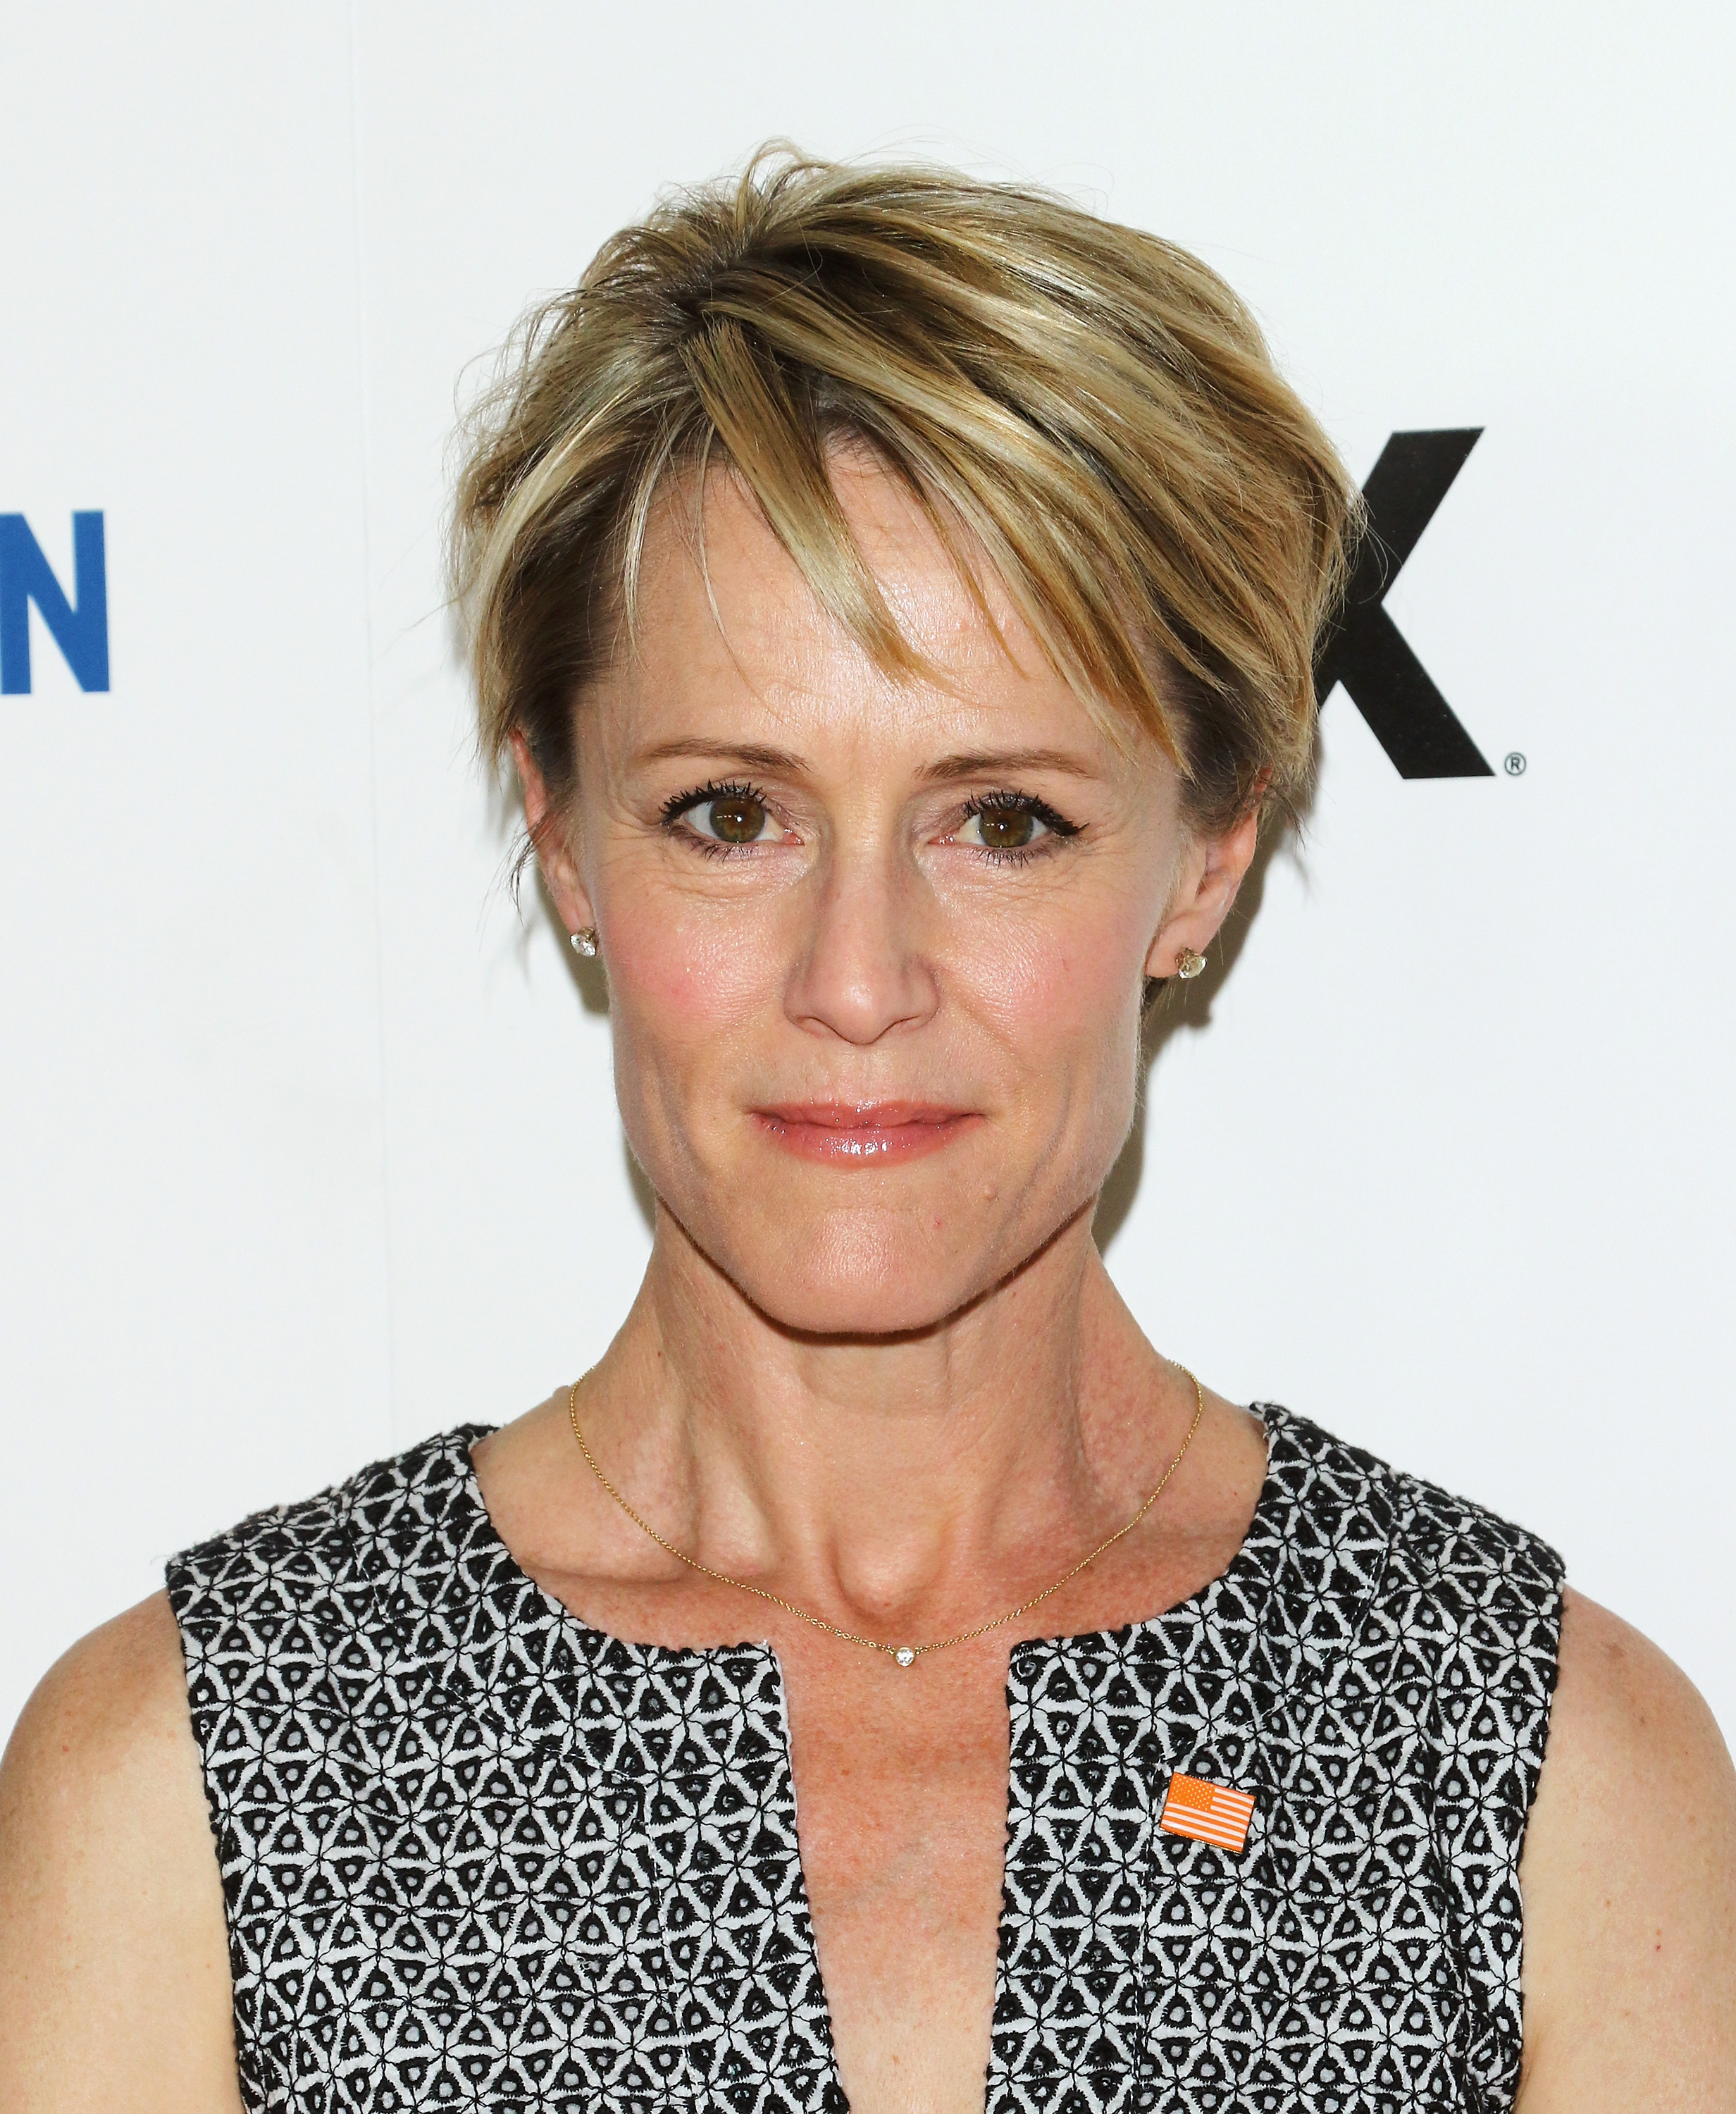 Mary Stuart Masterson nudes (78 foto and video), Tits, Cleavage, Twitter, underwear 2006